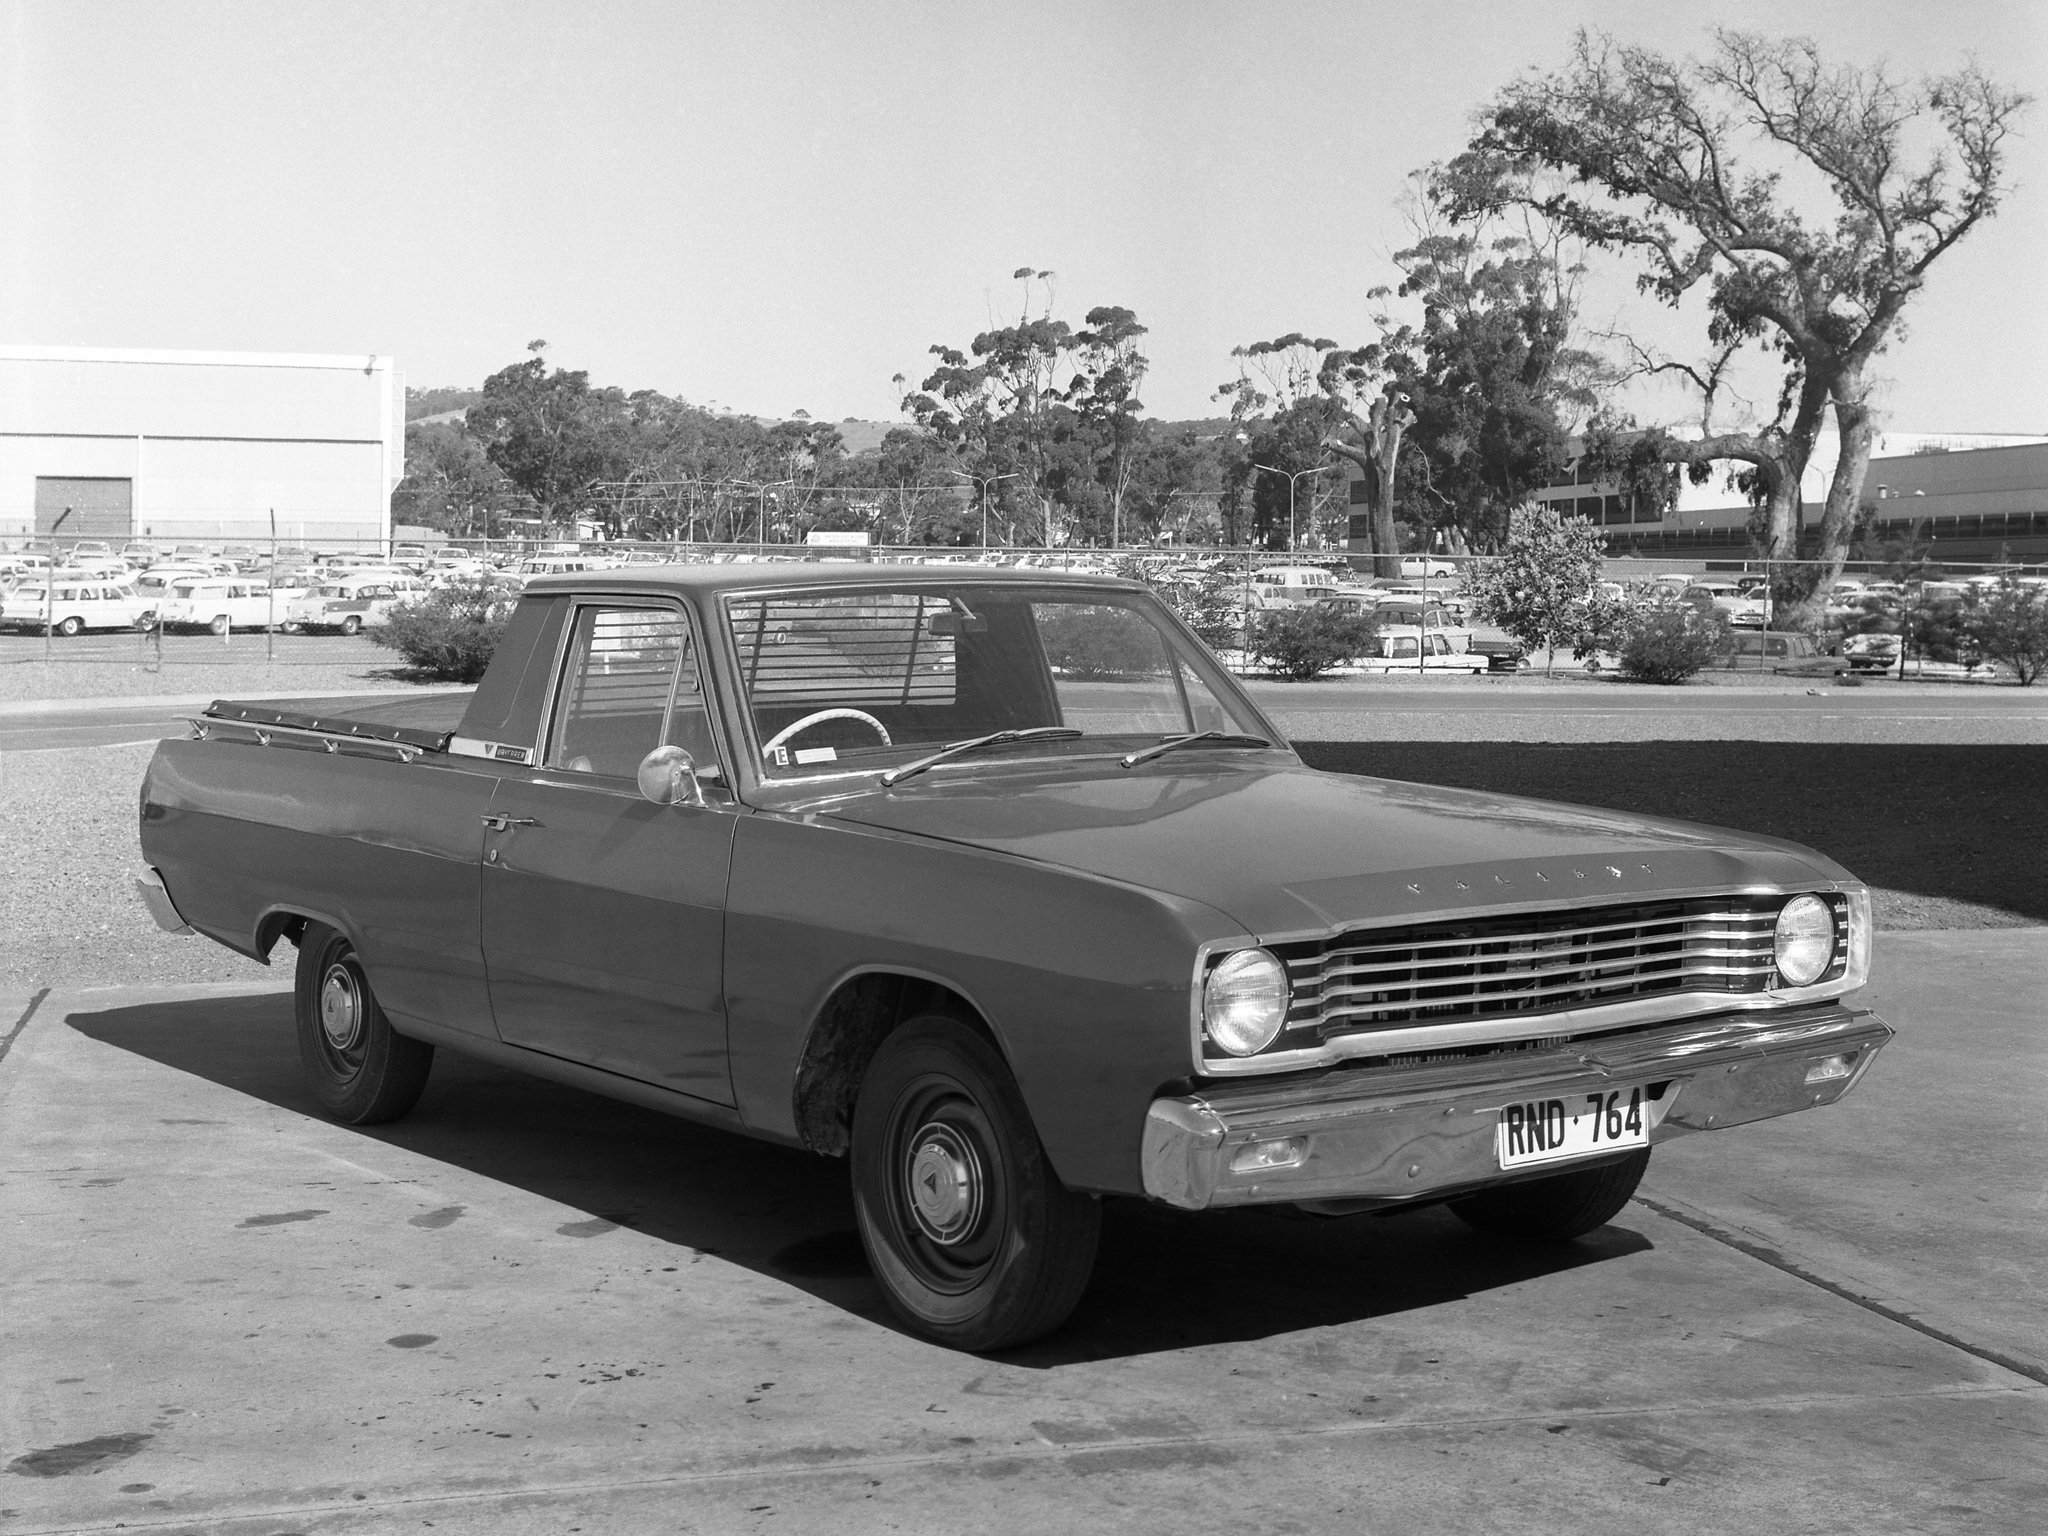 Chrysler Valiant #19